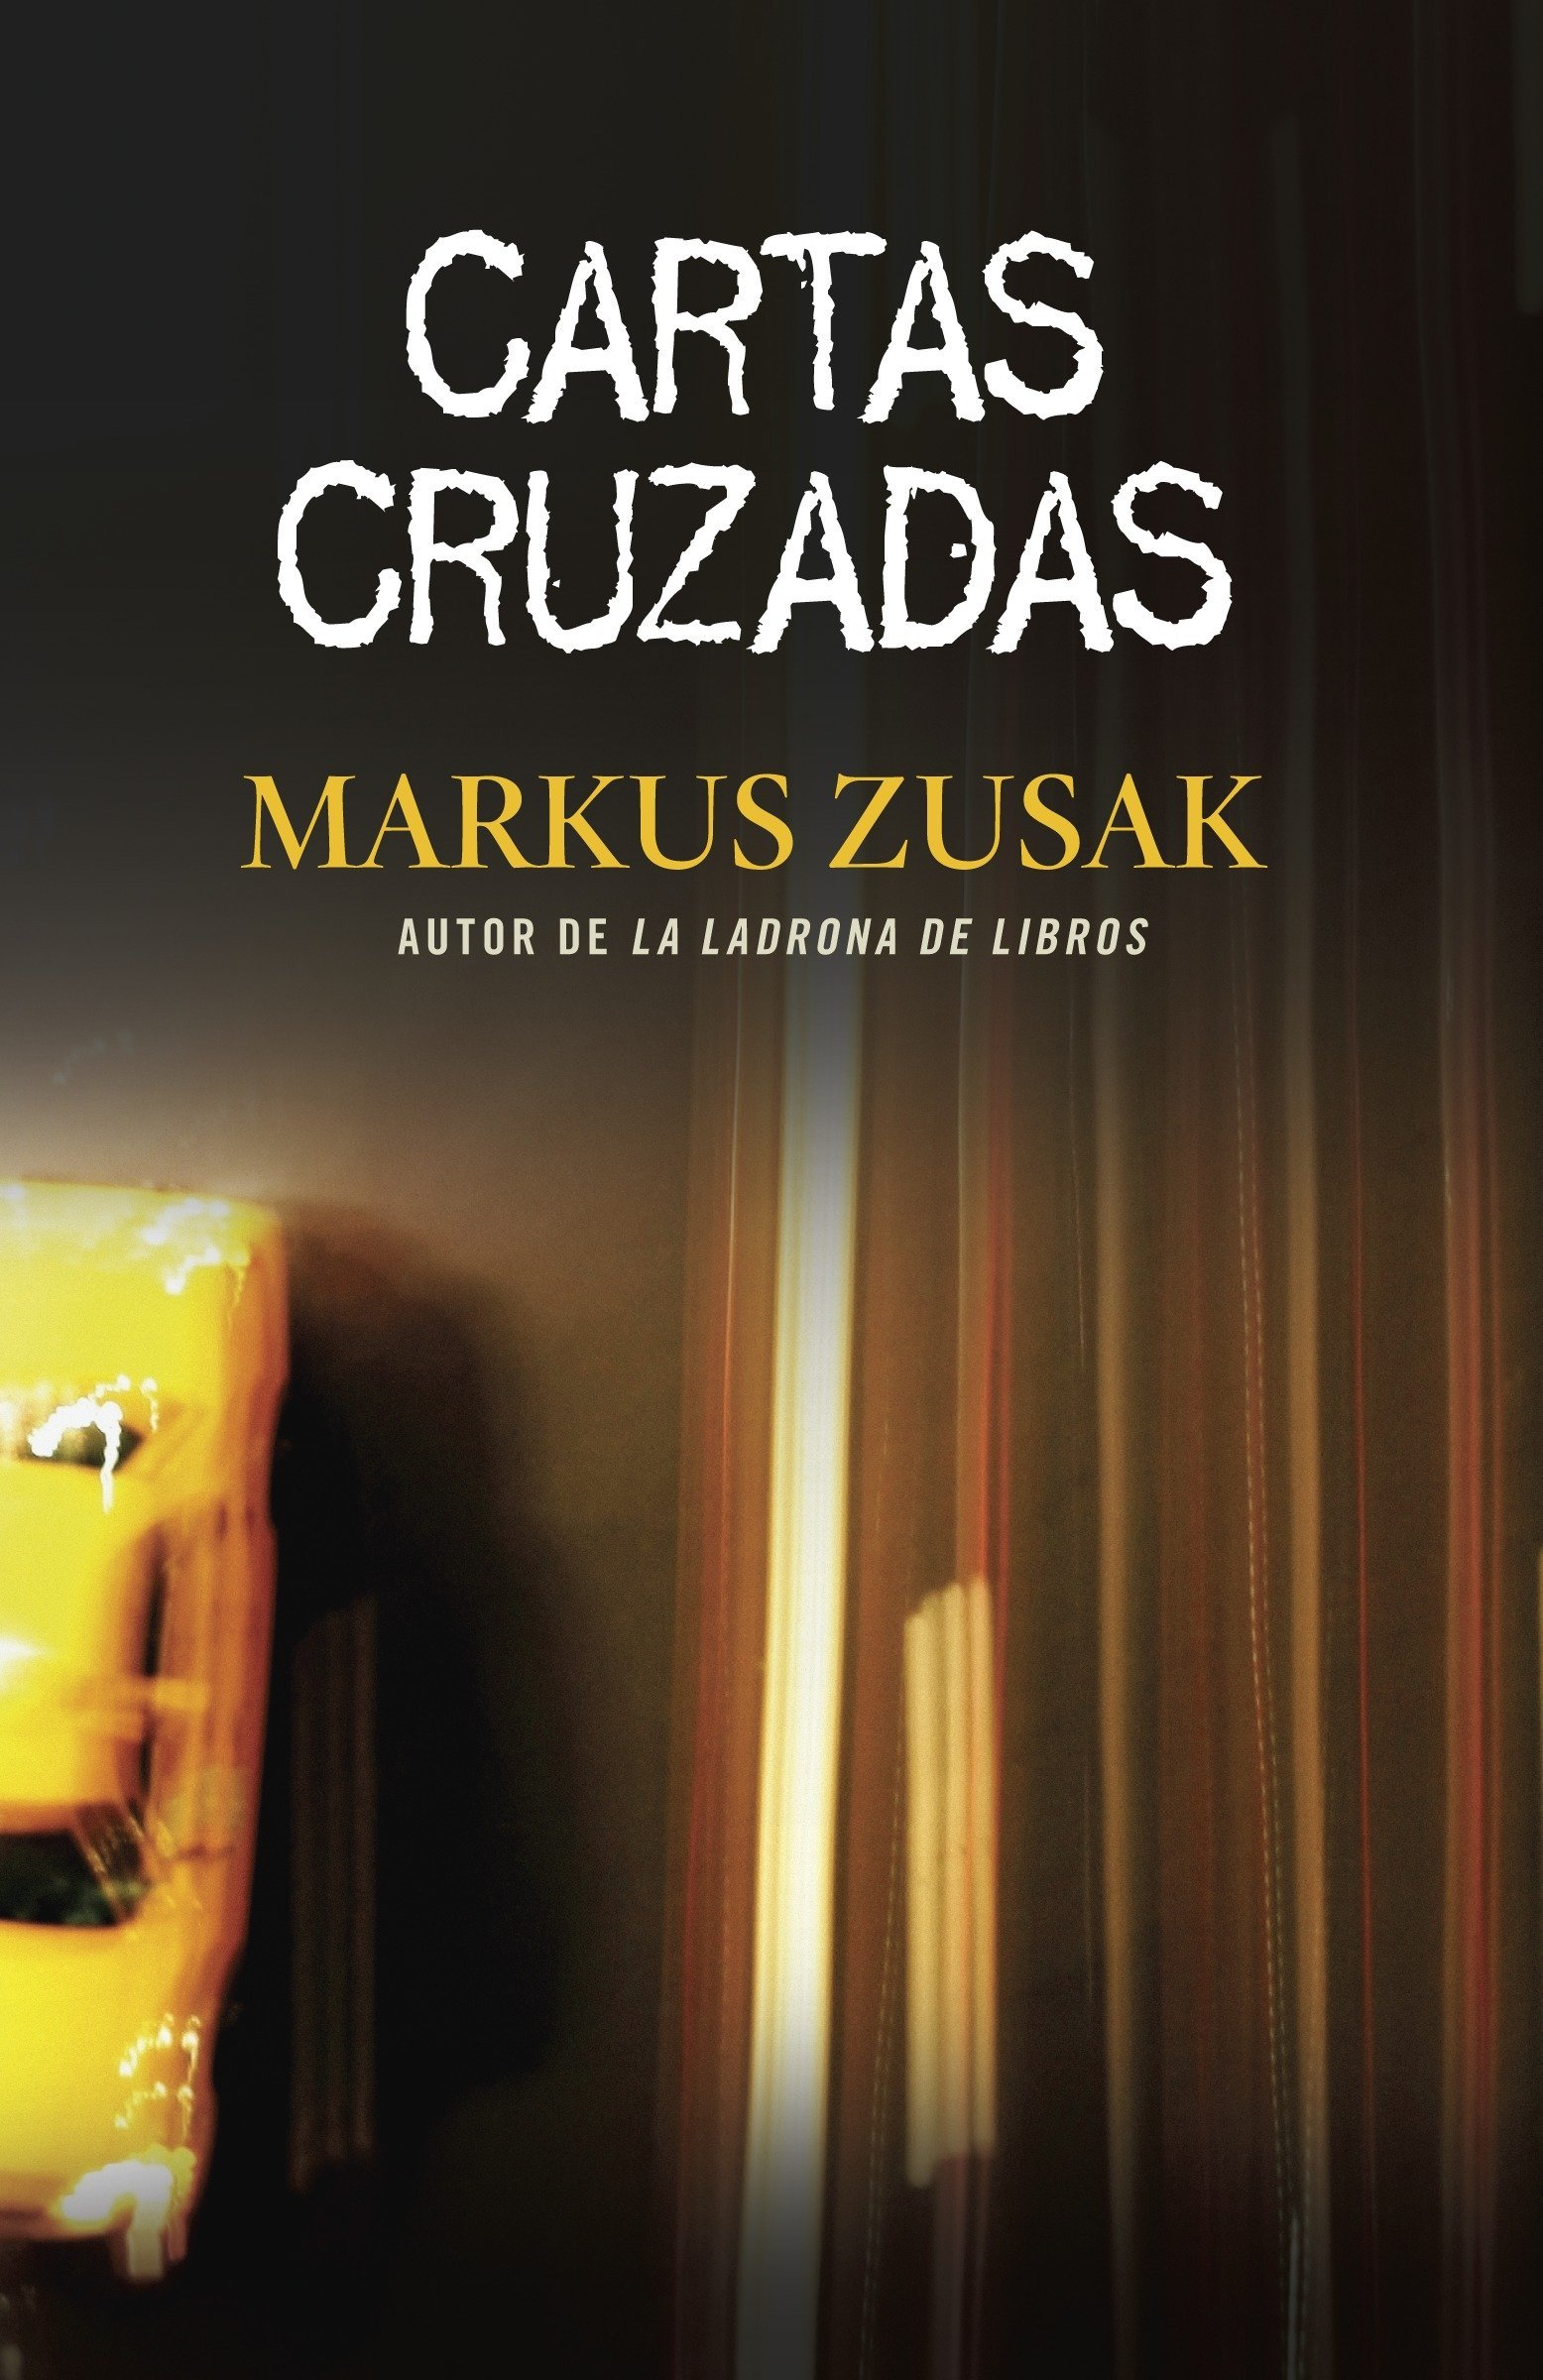 Amazon.com: Cartas Cruzadas (Spanish Edition) (9780307951458 ...